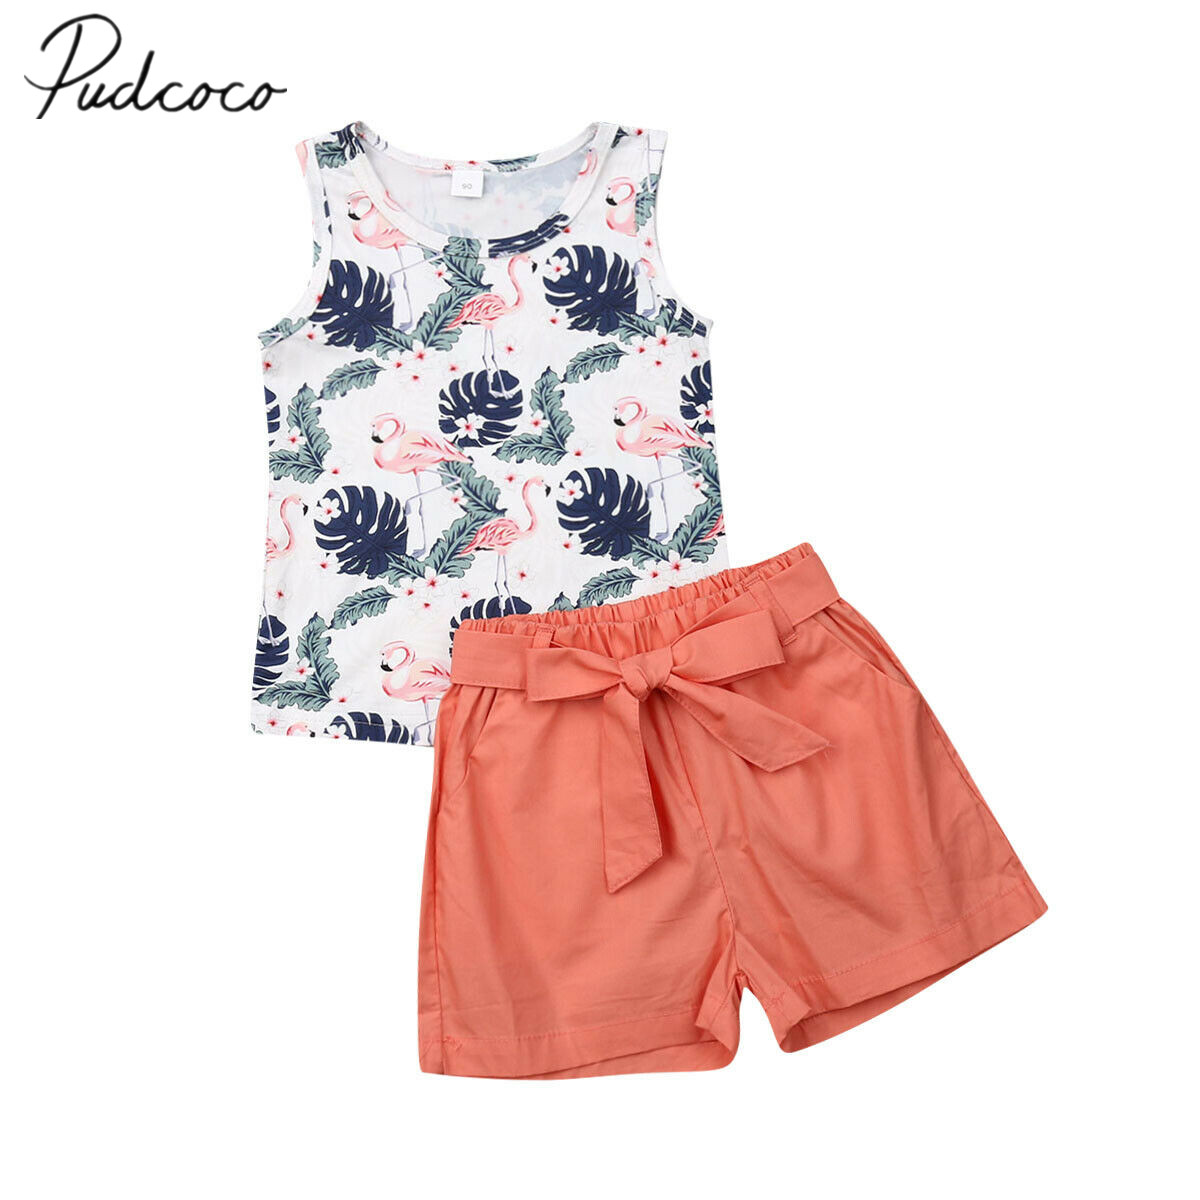 Kids Baby Girls Sleeveless Tops T-Shirt Floral Short Pants Set Clothes Outfits